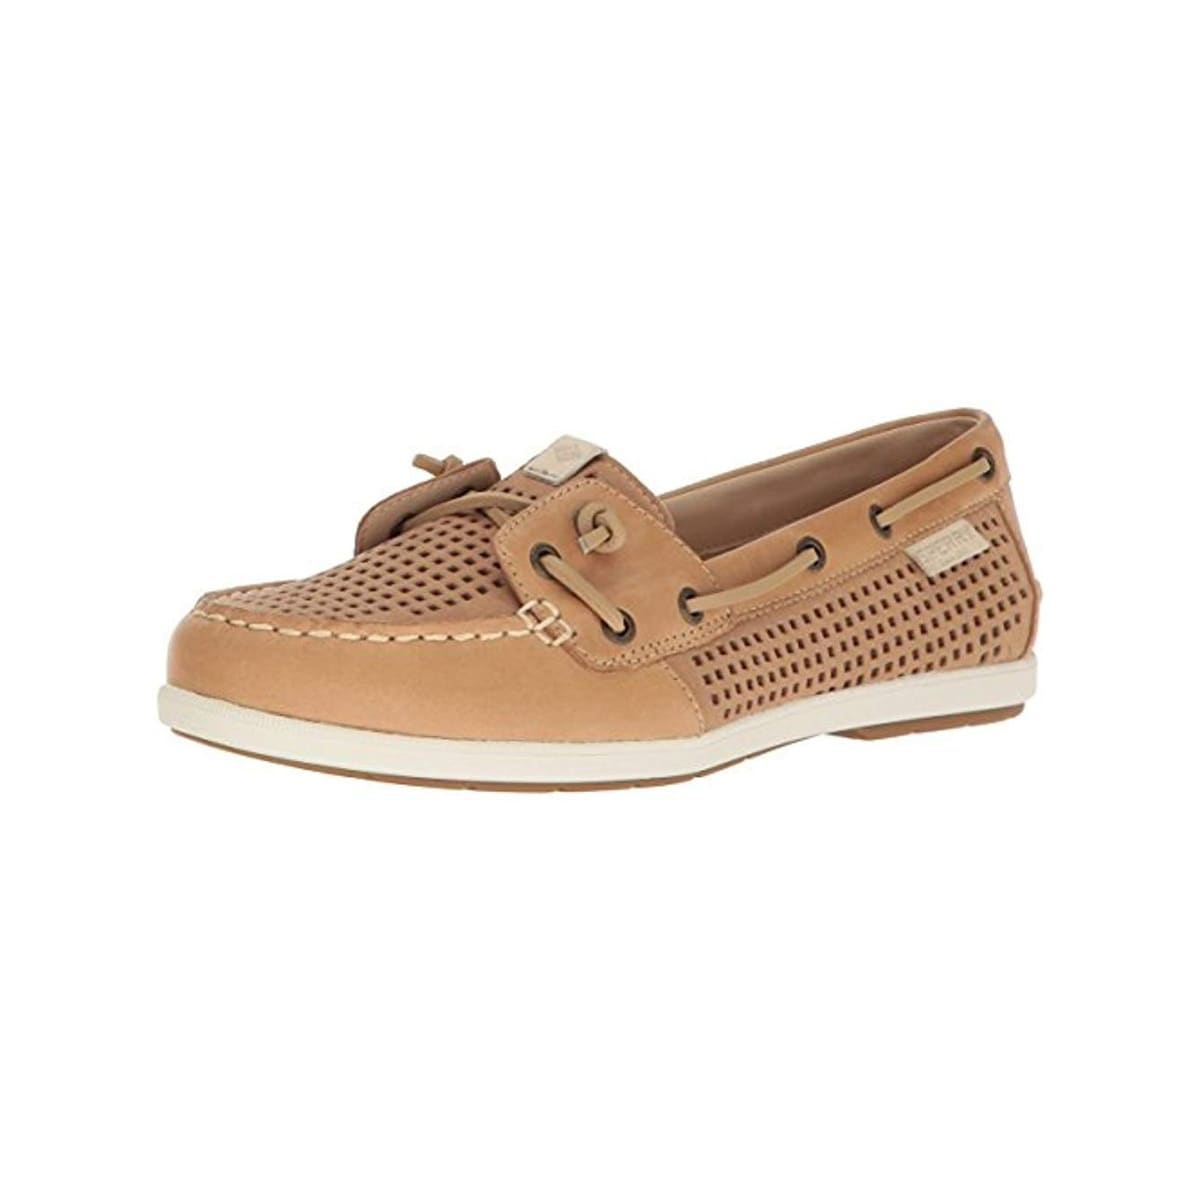 Sperry Womens Coil Ivy Boat Shoes Perforated Non Marking Tan 8 5 Medium B M 8 5 Medium B M